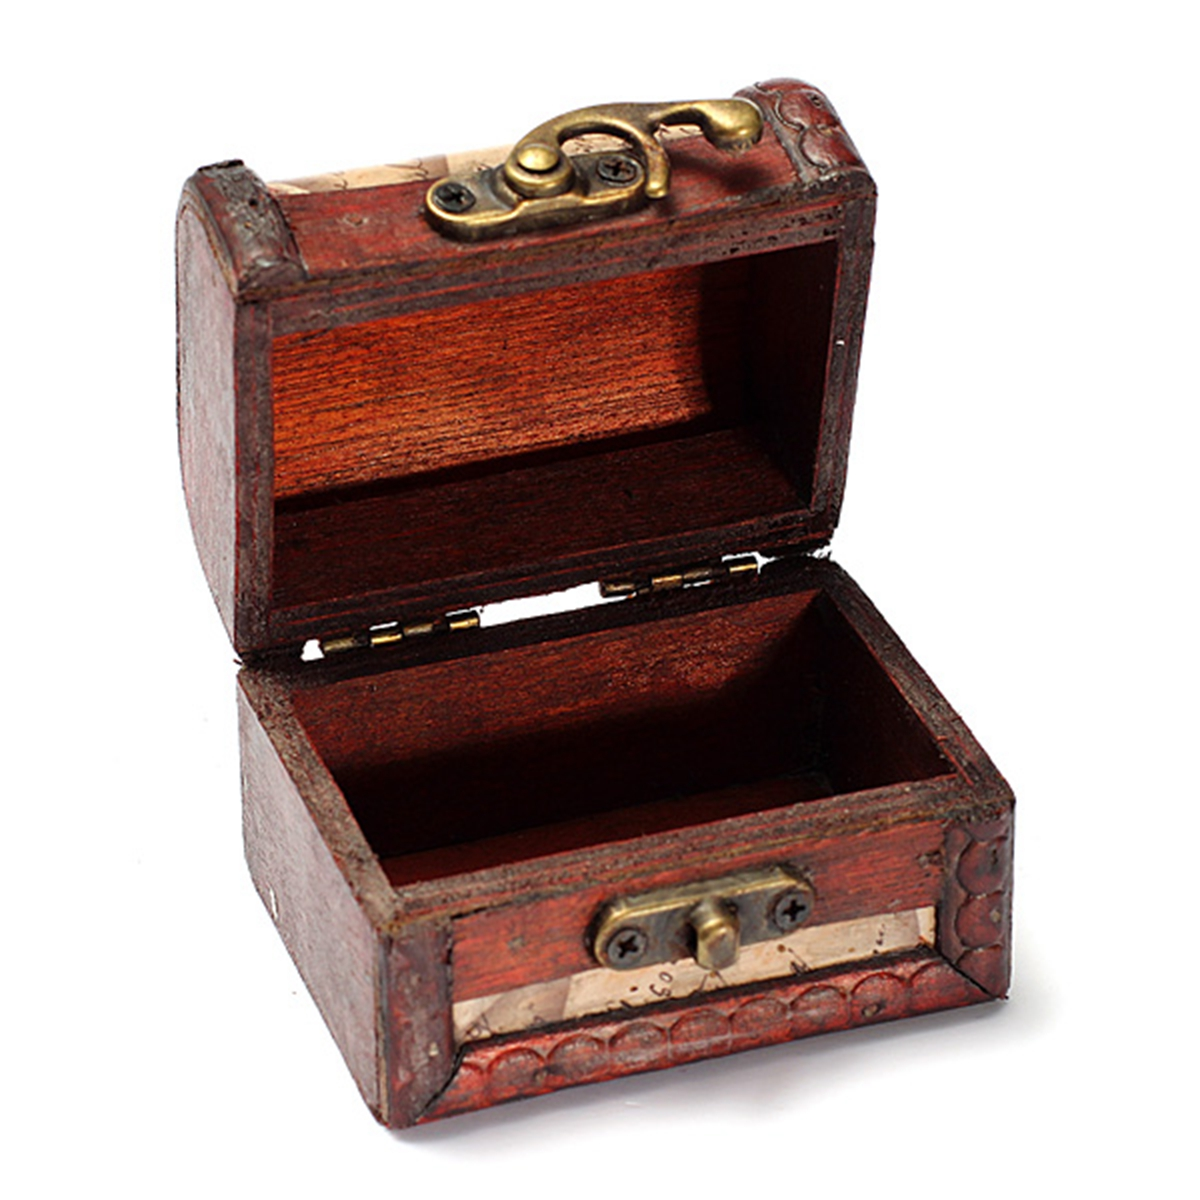 vintage stamp small metal lock jewelry treasure chest case handmade wooden box. Black Bedroom Furniture Sets. Home Design Ideas